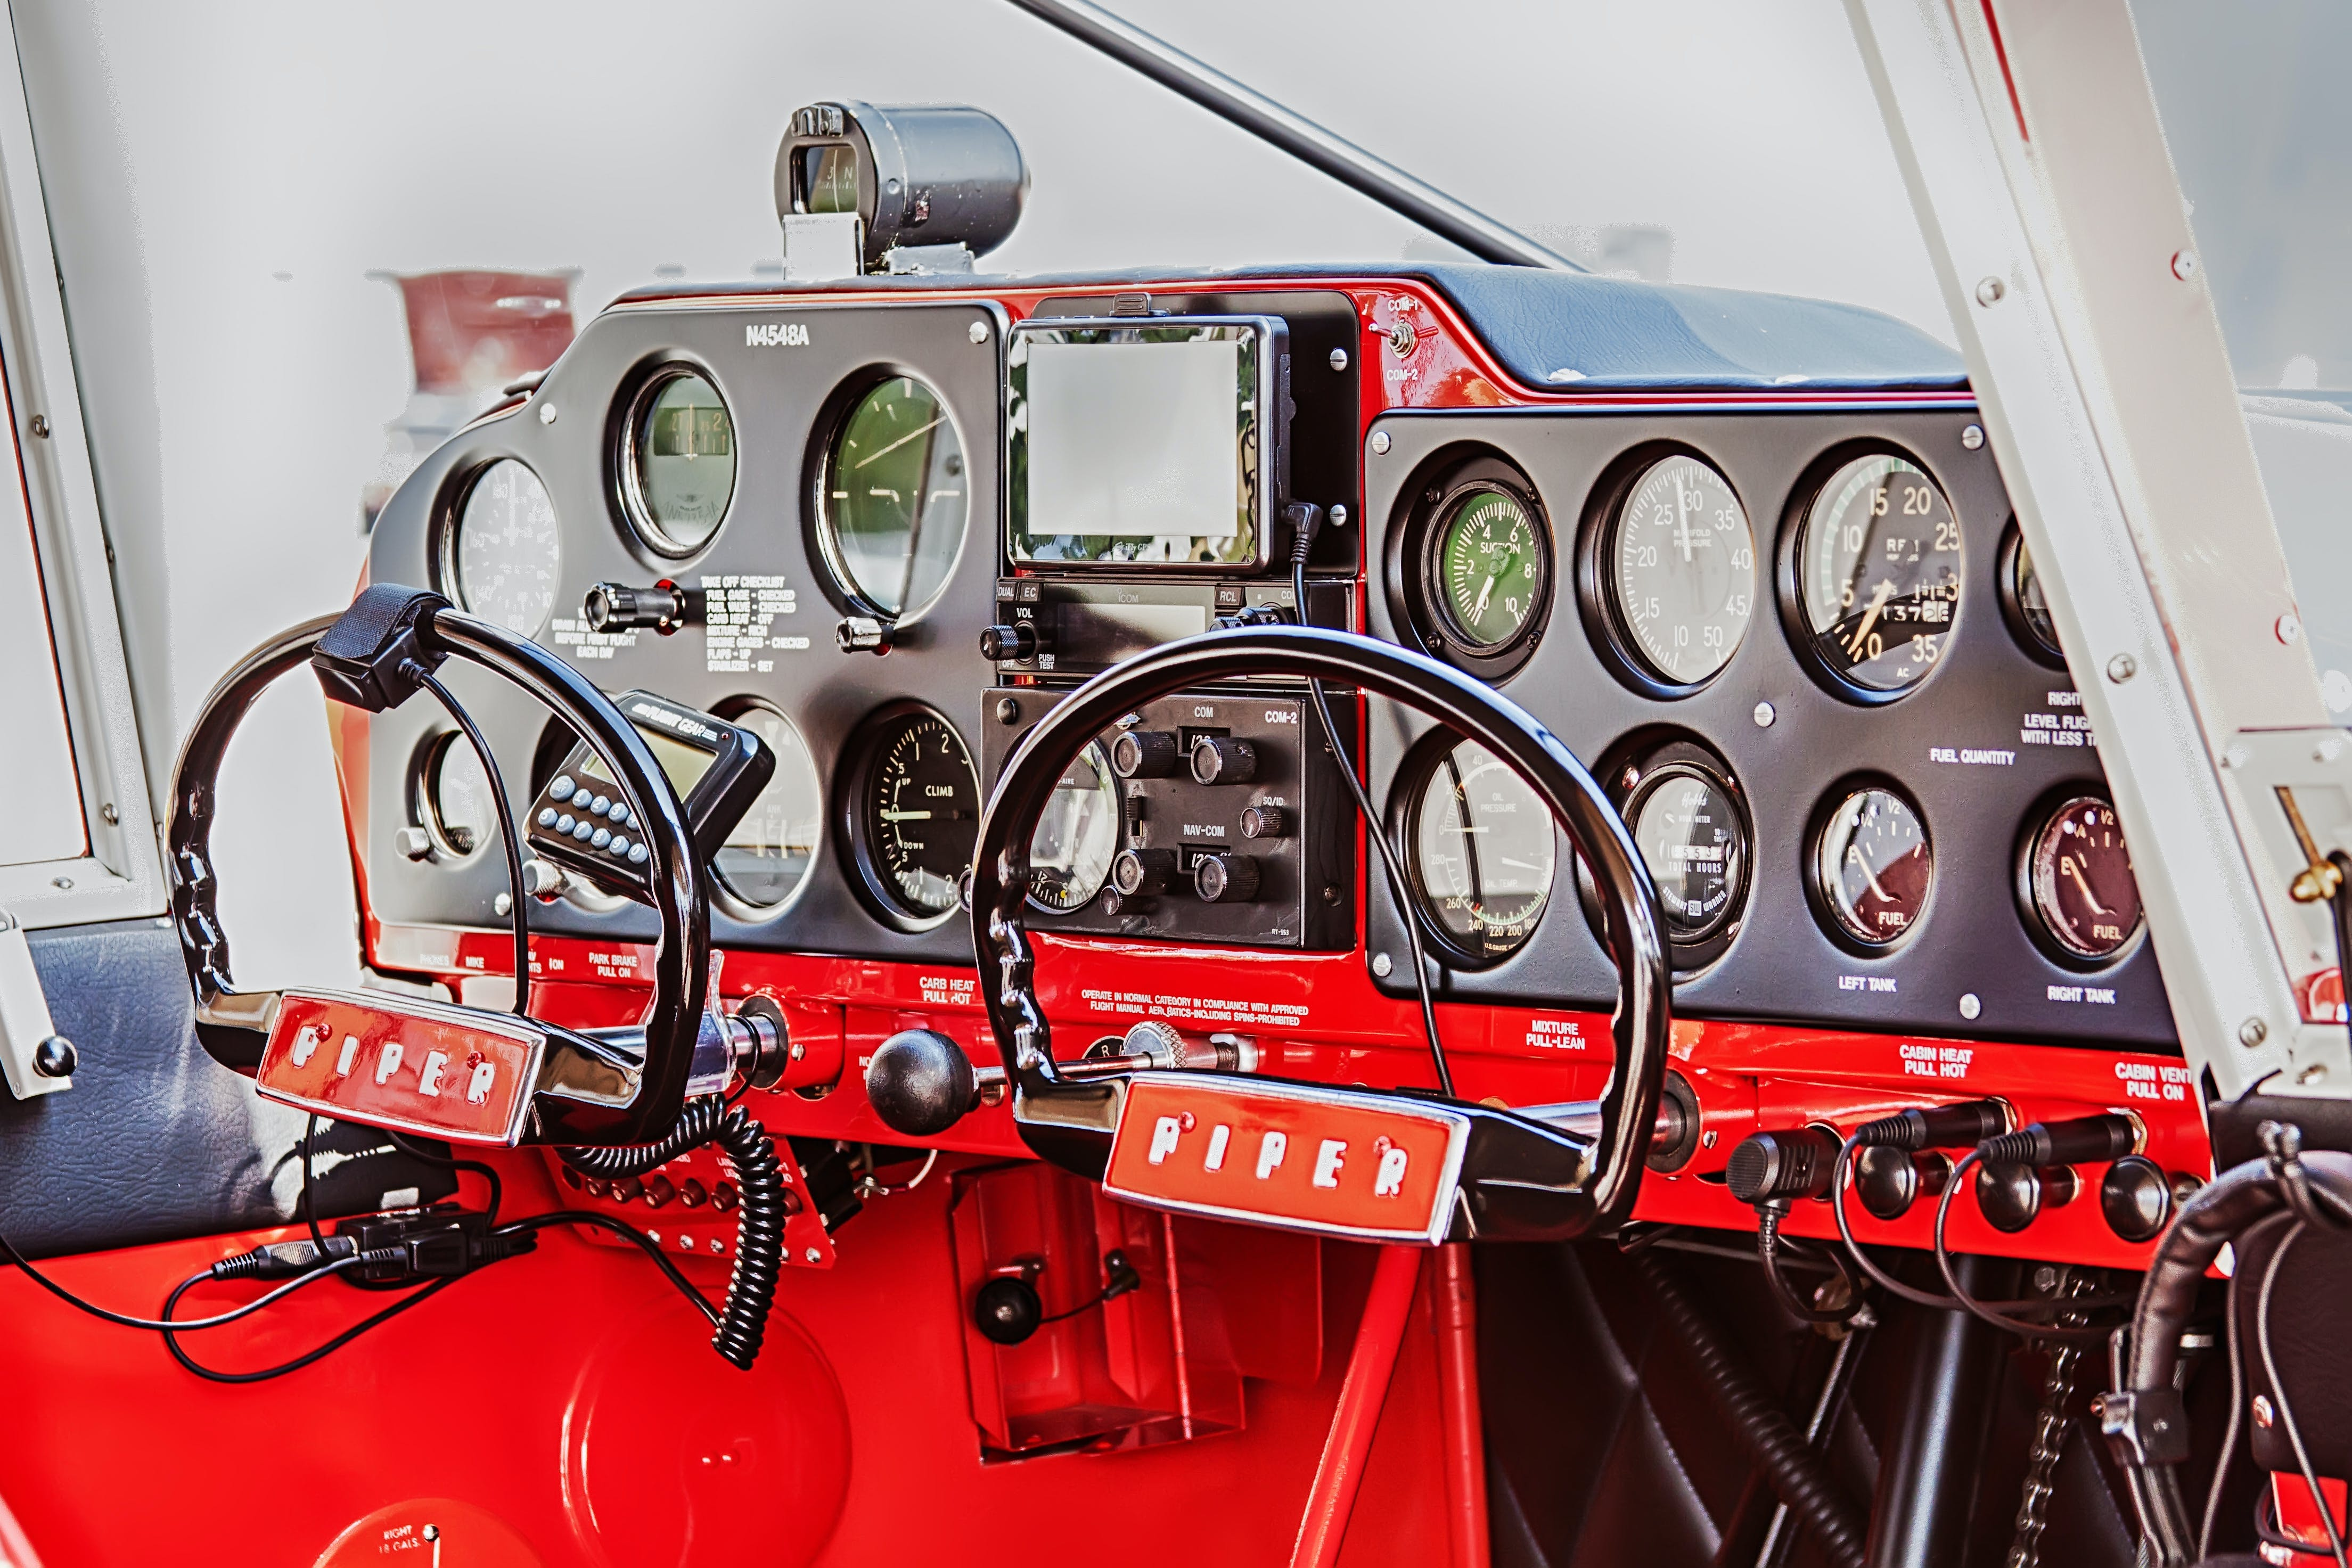 Red and Black Airplane Cockpit